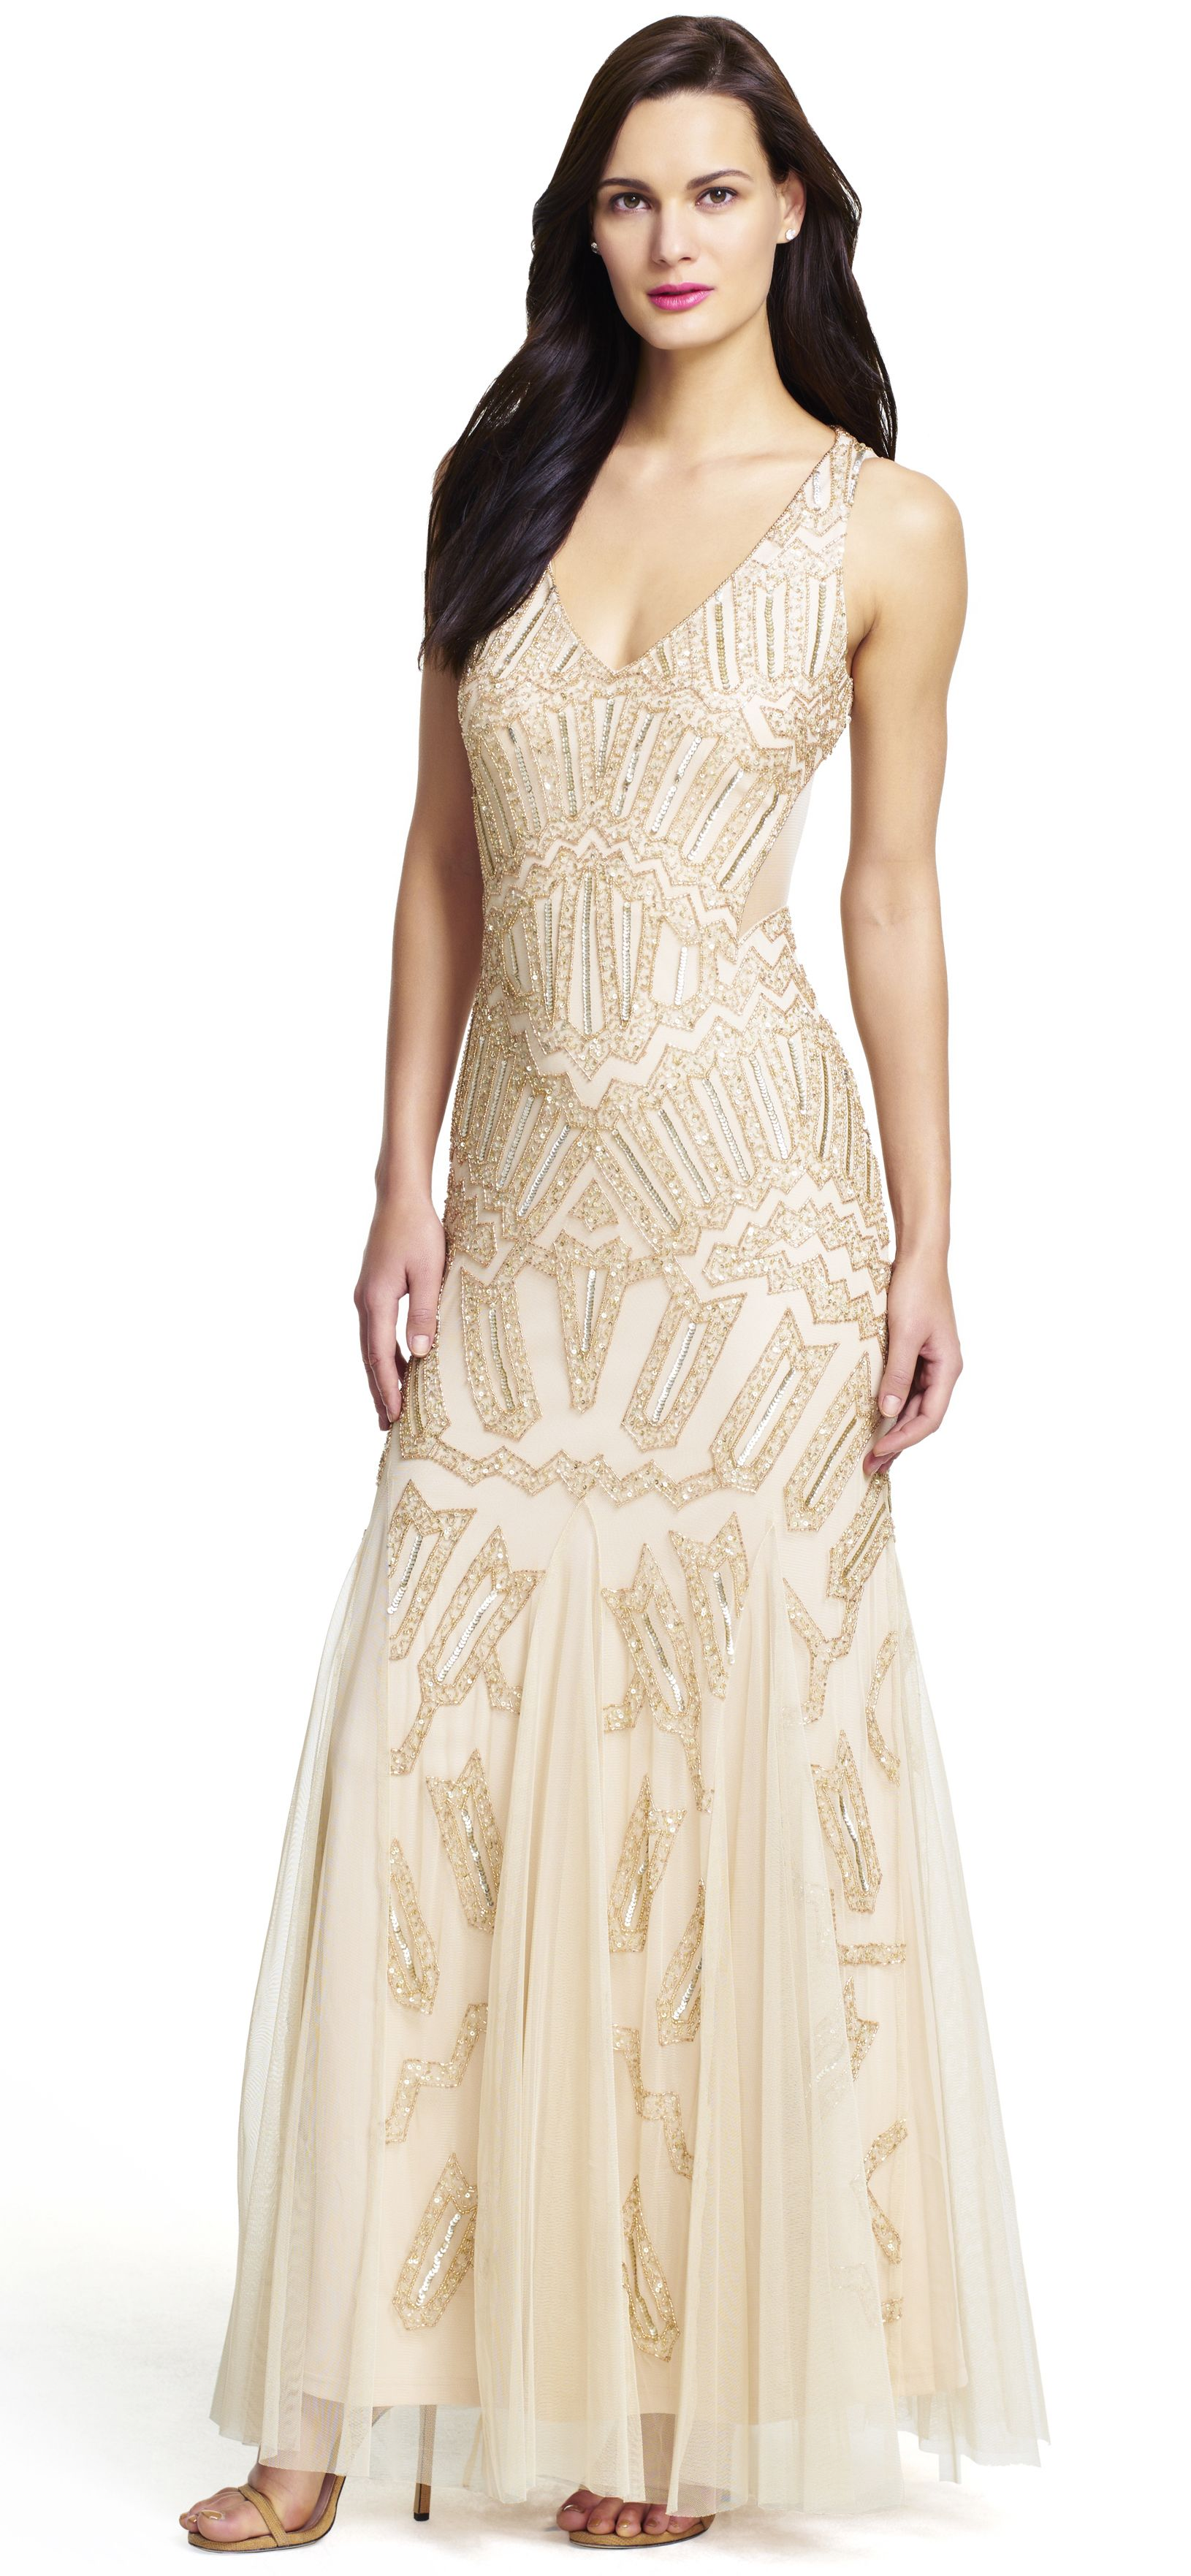 Long beaded gown with cutout sides